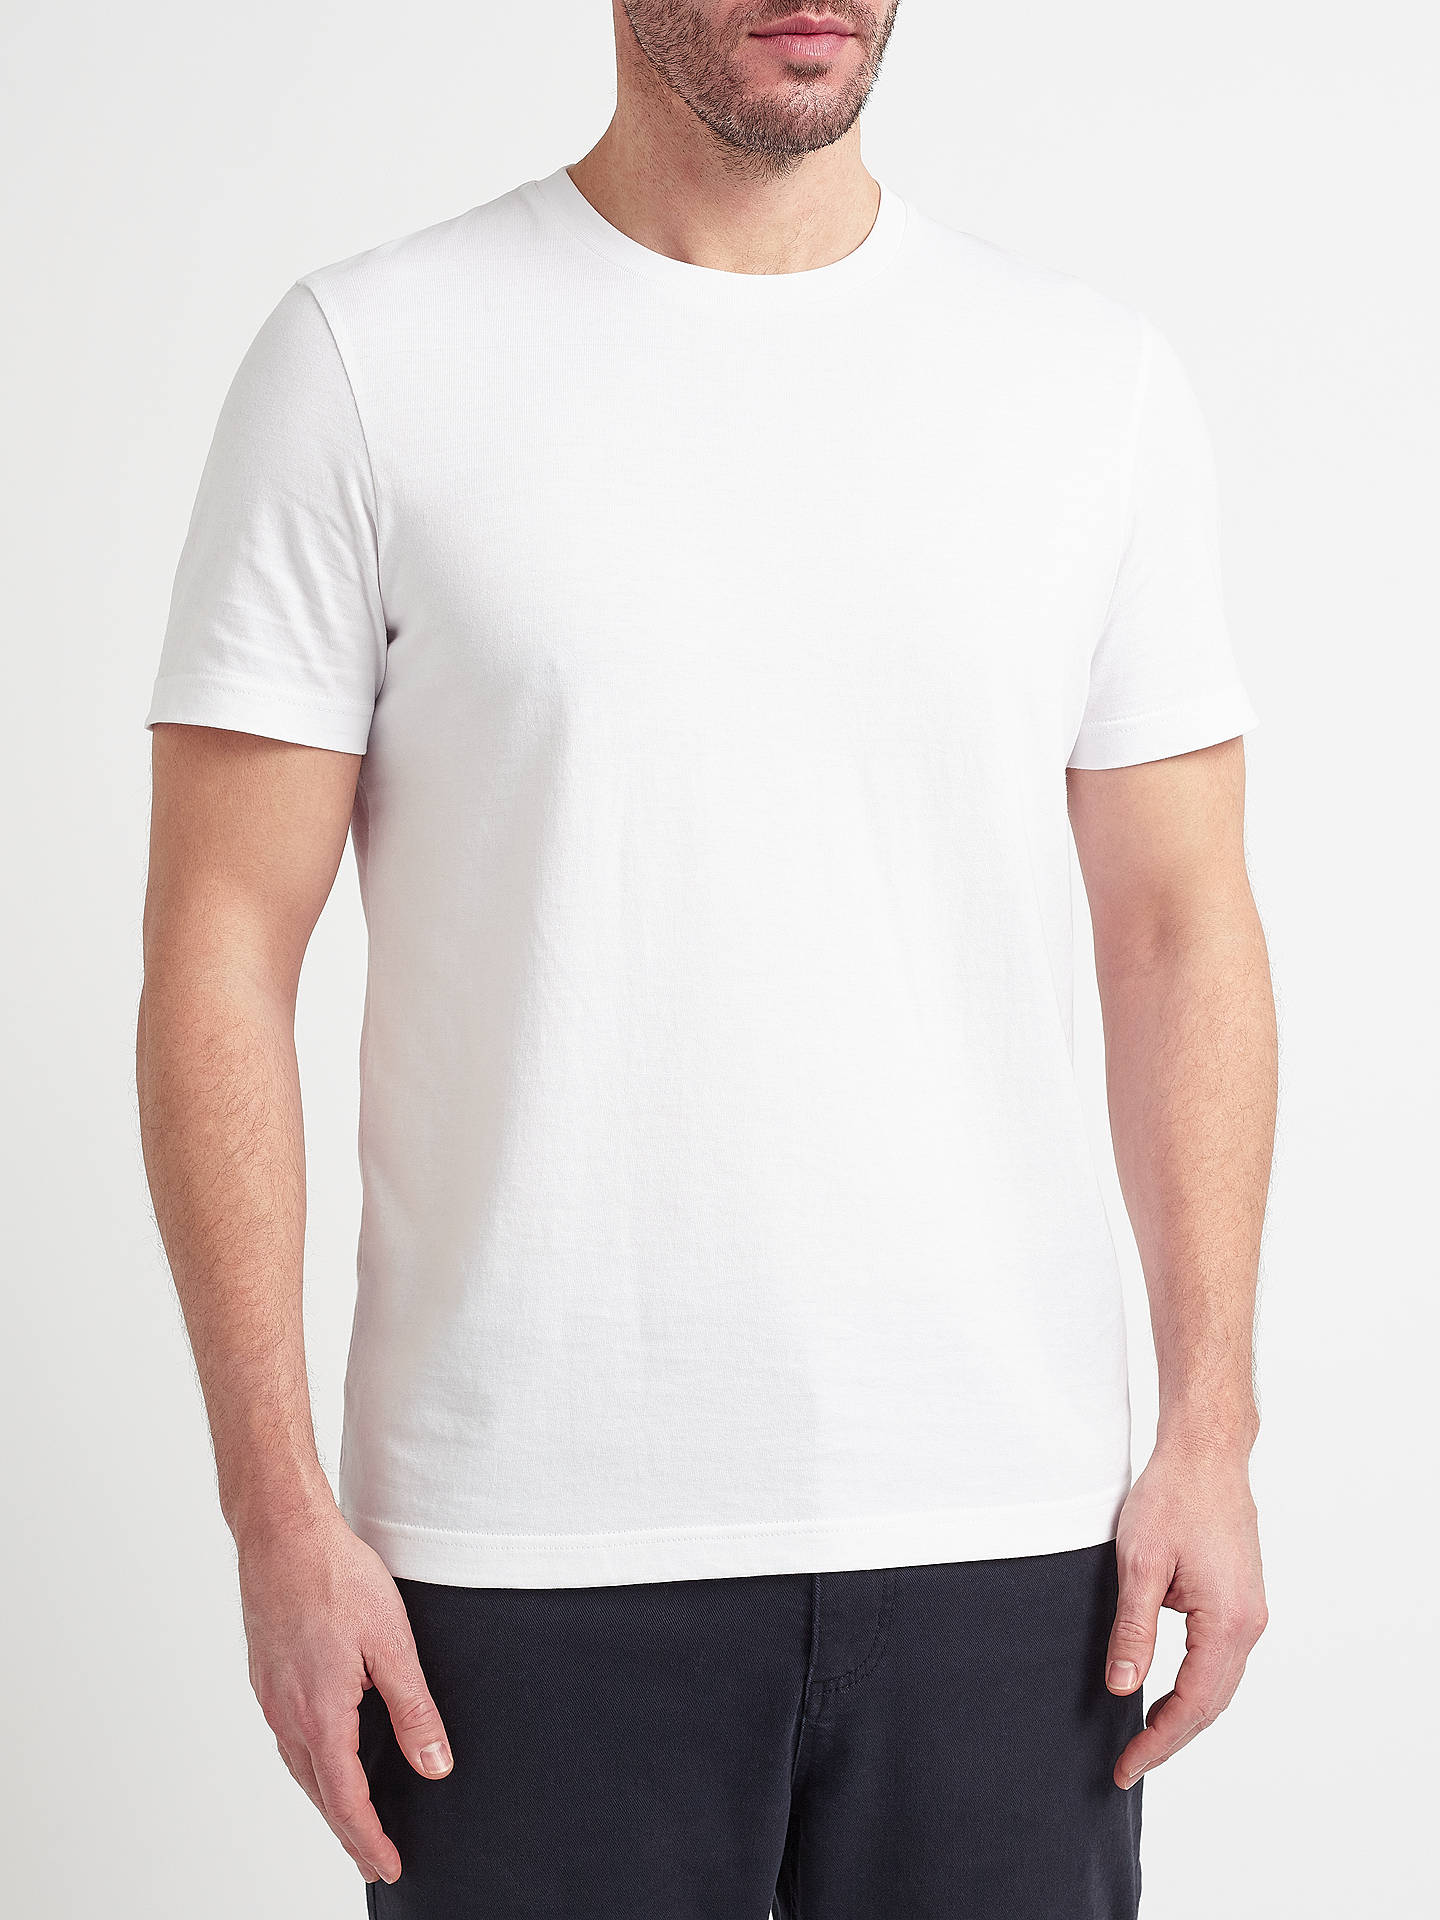 e81882cd7 View All Men's T-Shirts. Previous Image Next Image. Buy John Lewis &  Partners Organic Cotton T-Shirt, White, S Online at ...